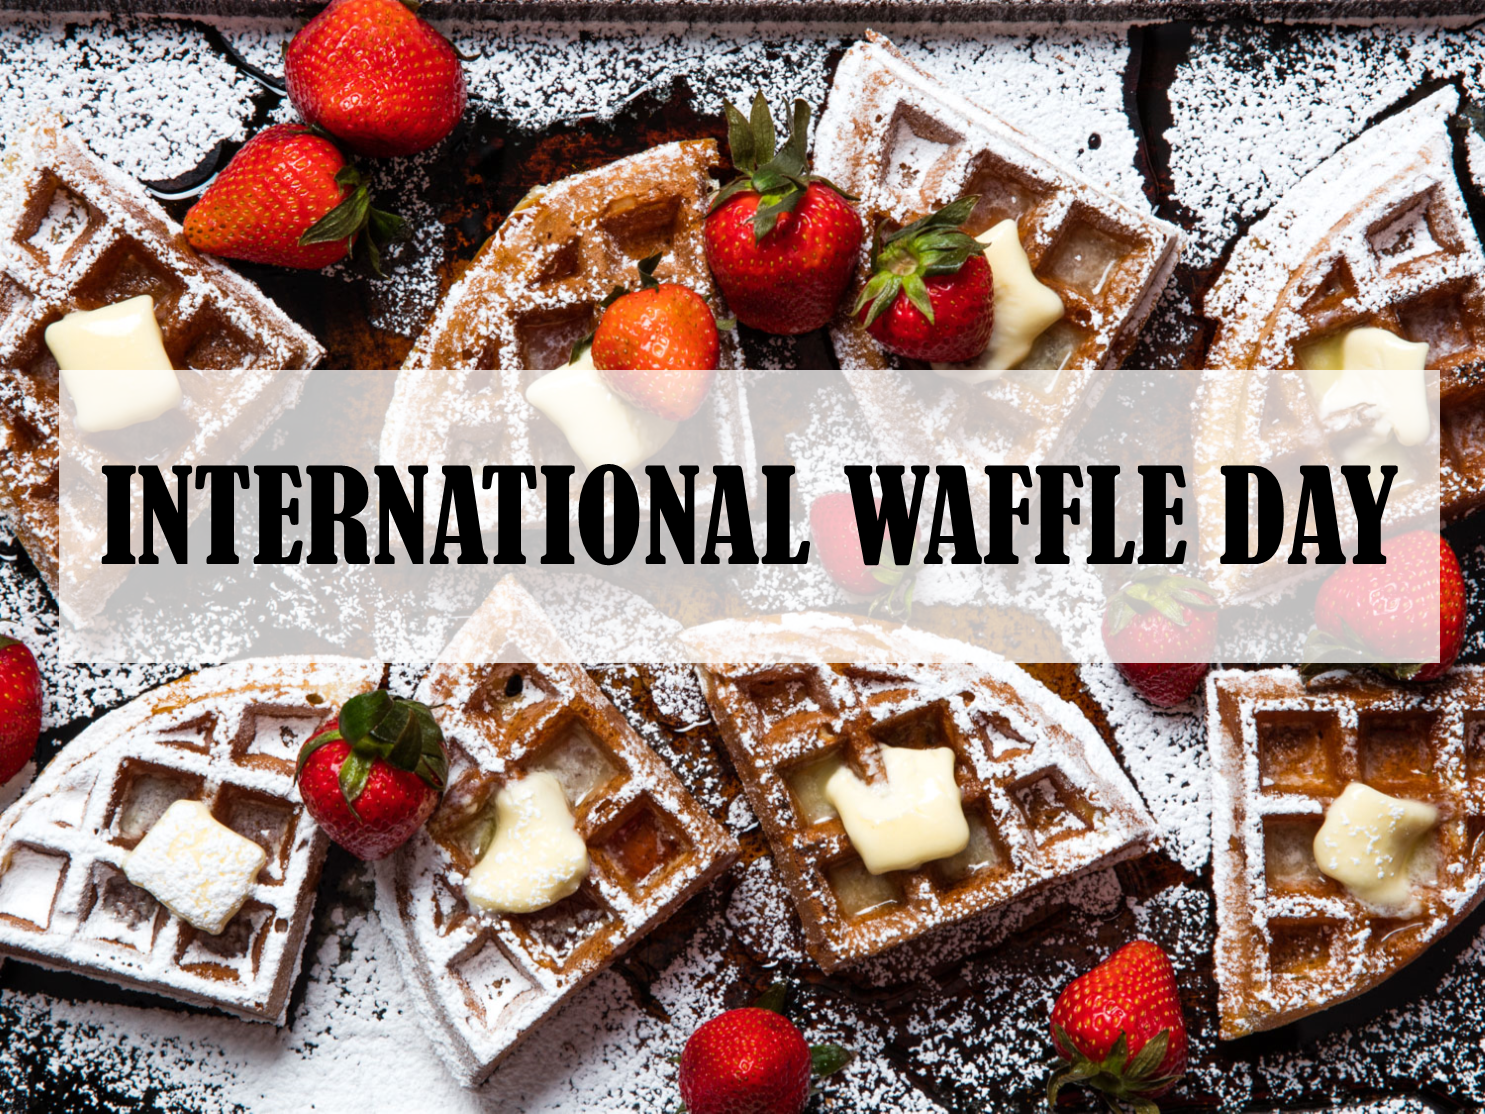 International Waffle Day – March 25